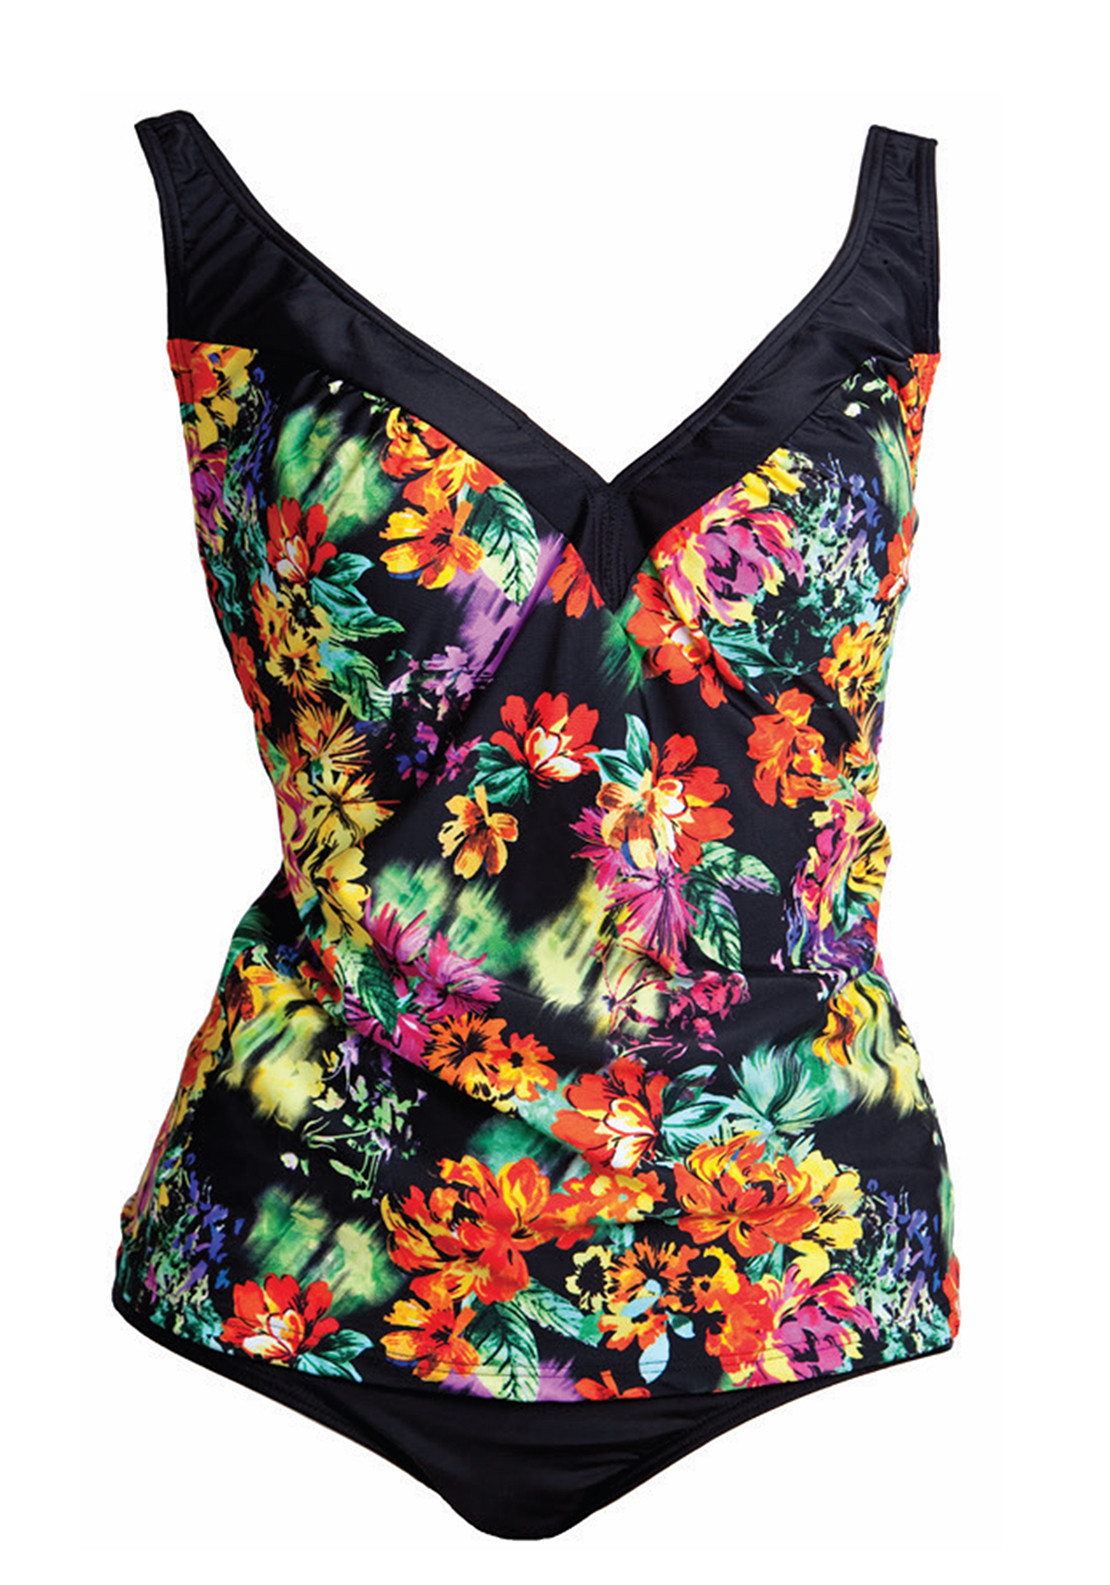 Pour Moi? Trinidad Control Tankini Set, Multi-Coloured